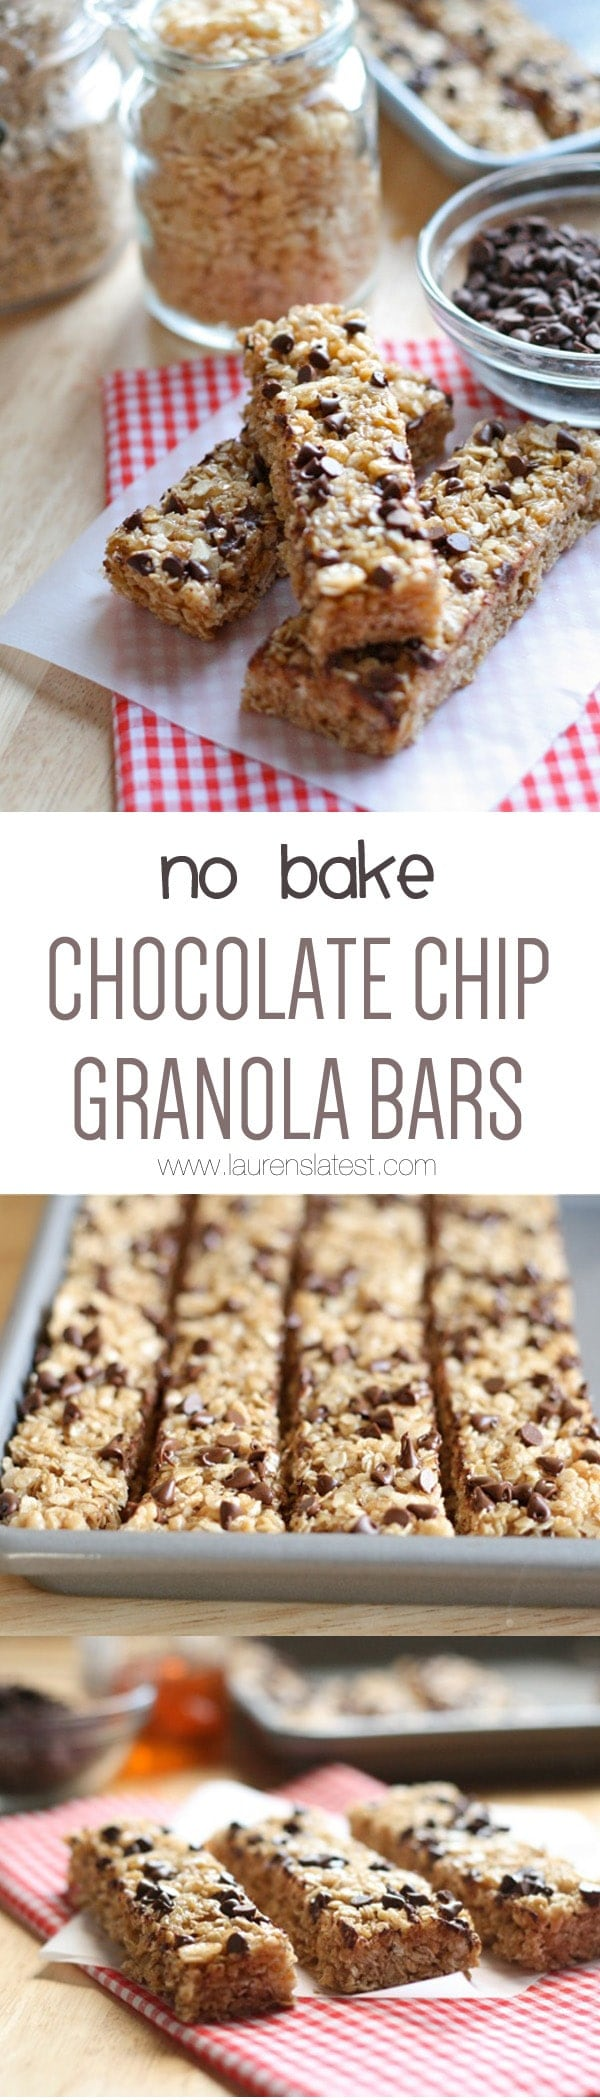 No Bake Chocolate Chip Granola Bars... Simple to make and healthier and cheaper than the store bought kind!